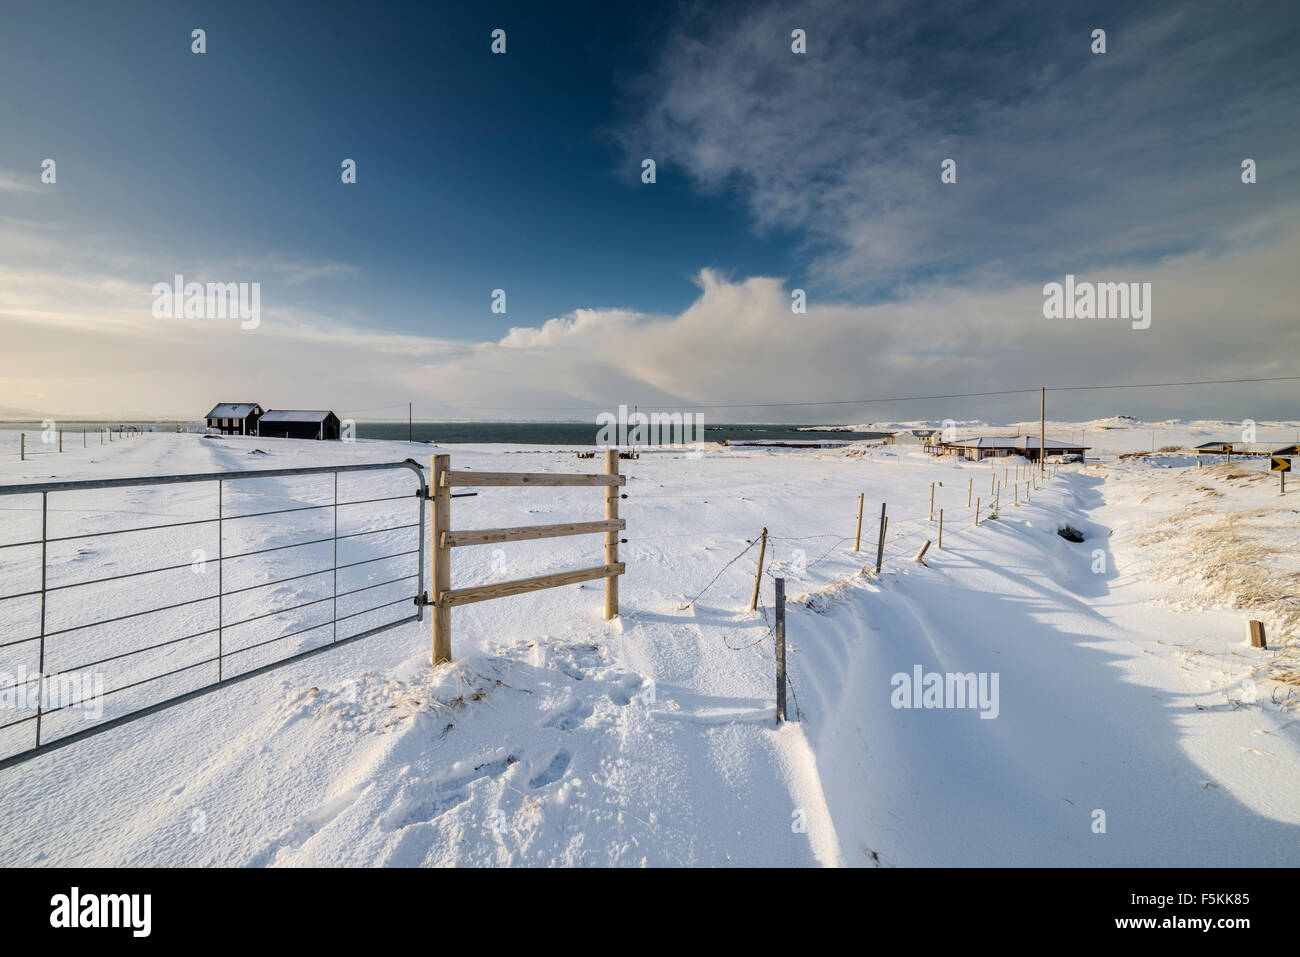 Akranes area, Iceland - Stock Image